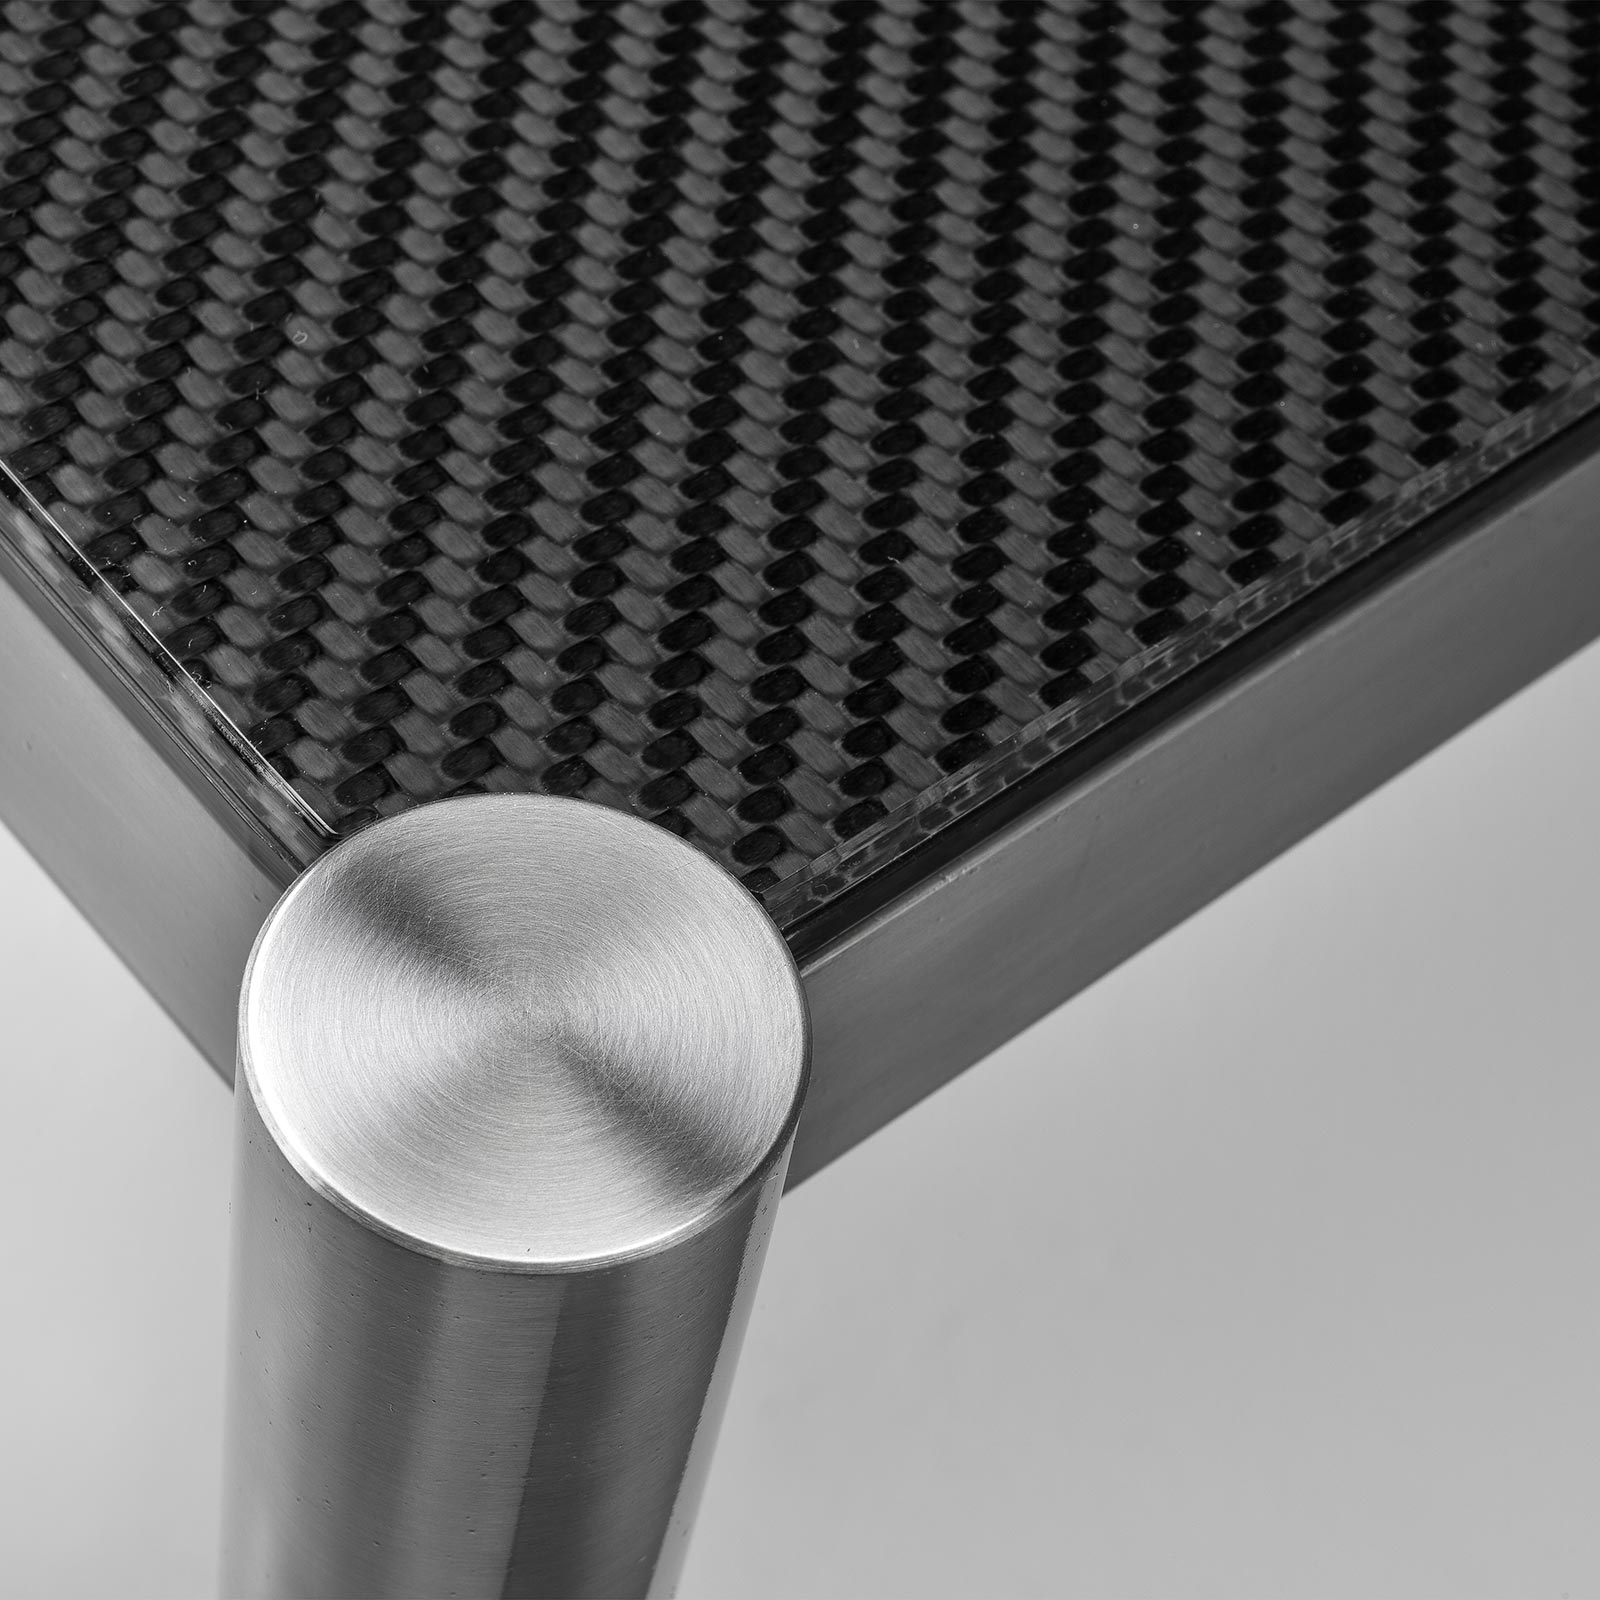 Carbon Fiber Gifts For Him, Home And Office And Interior Design Products